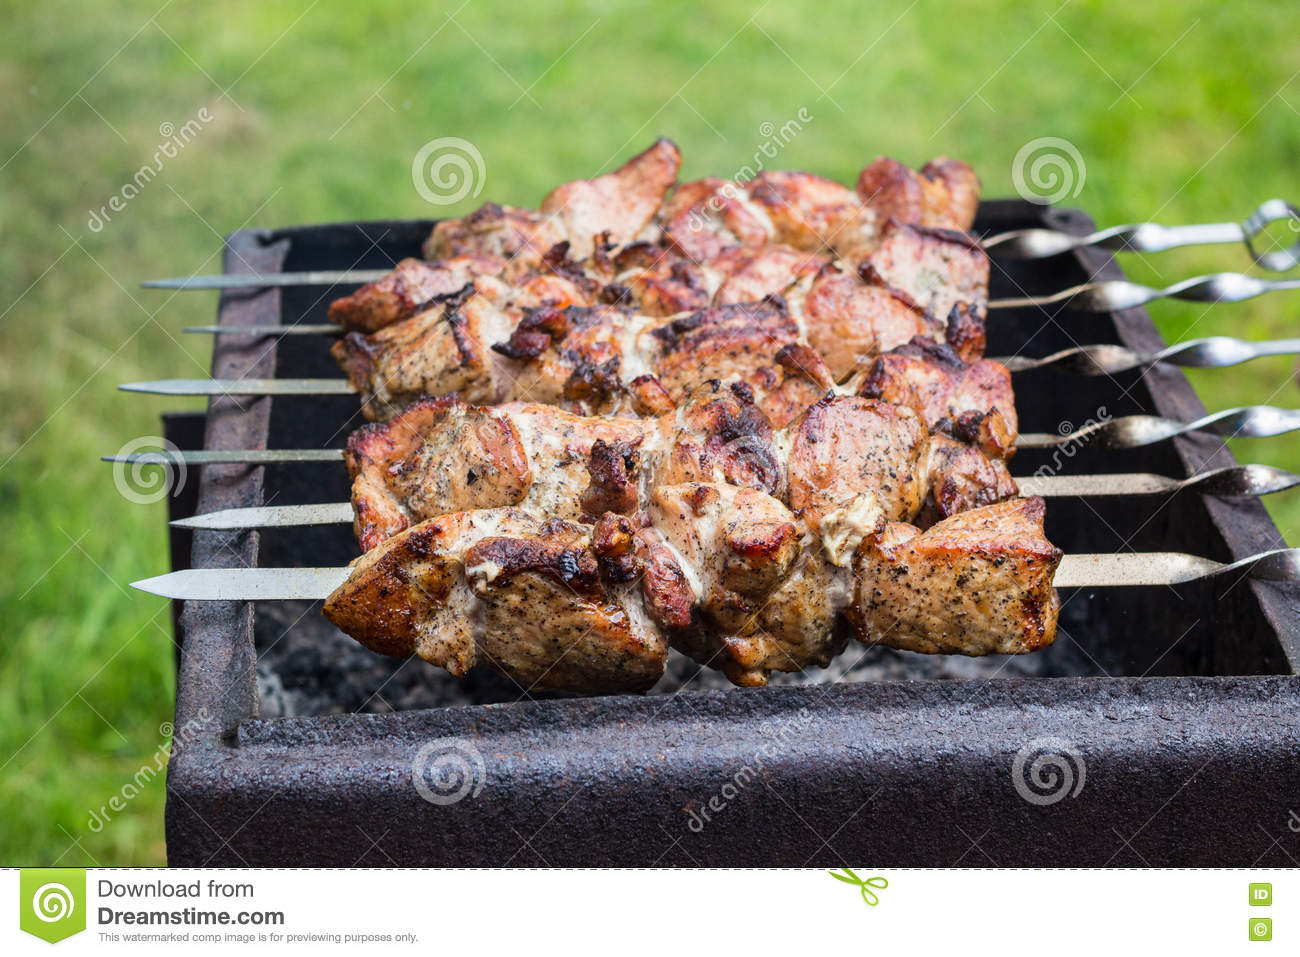 Meat on grill